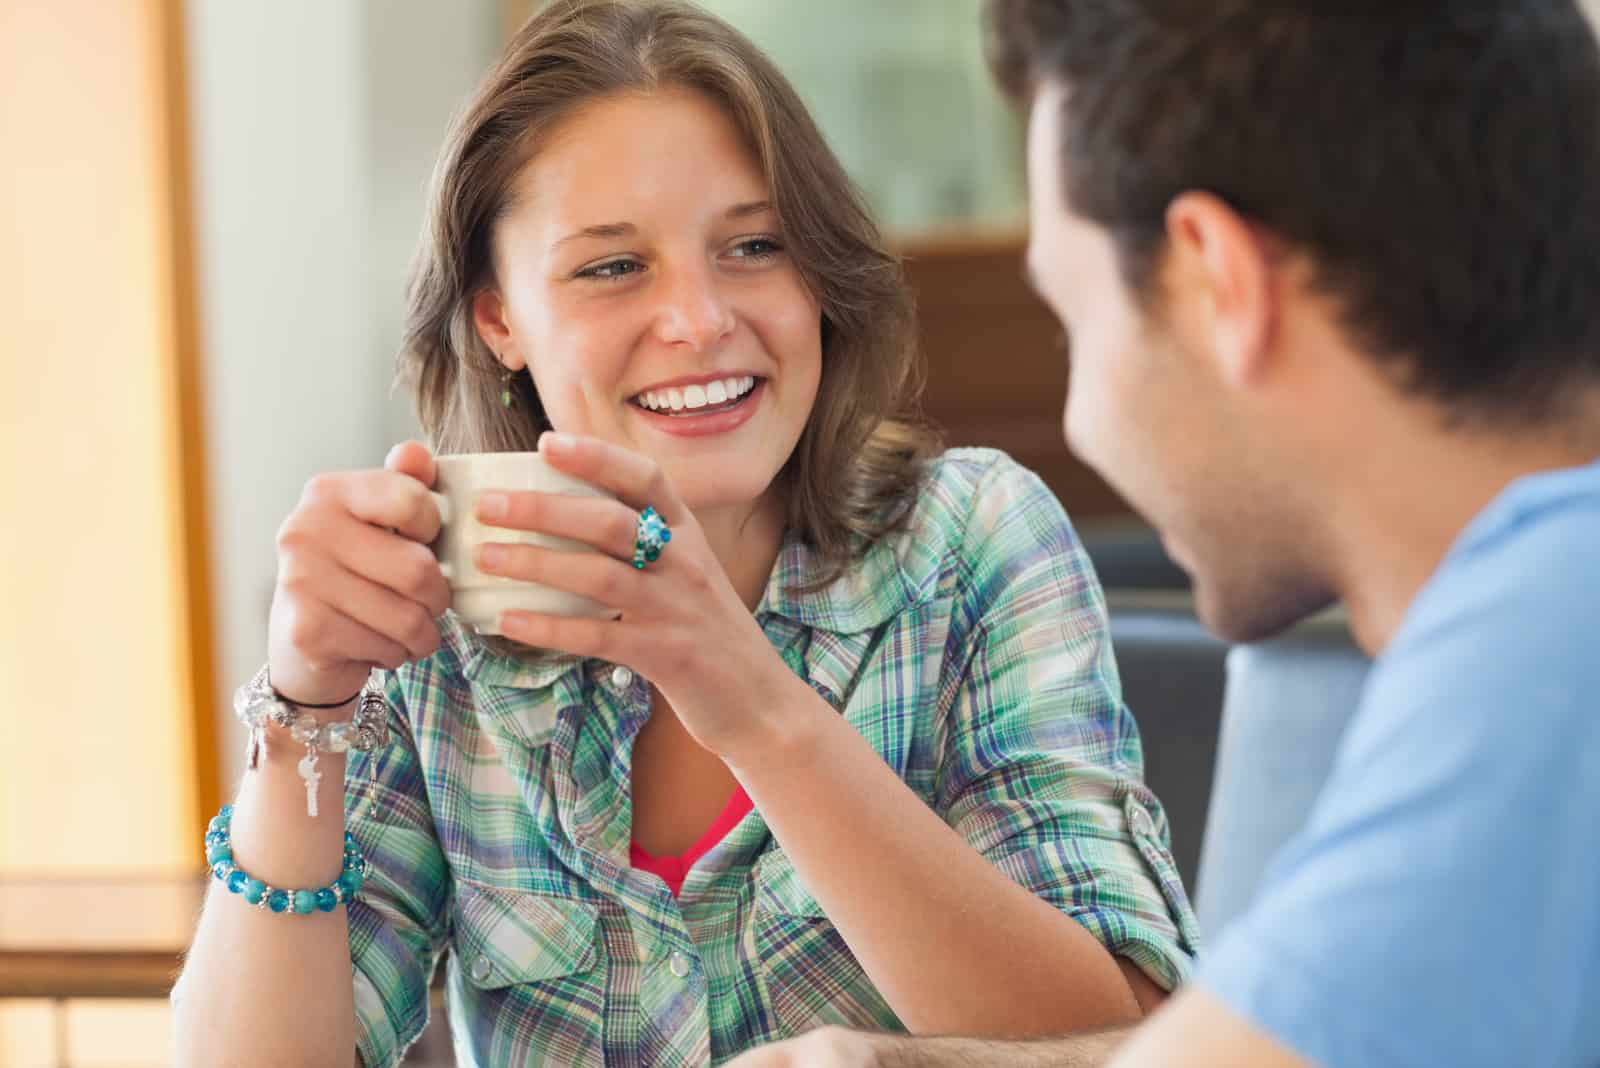 a smiling woman drinking coffee with a man and laughing